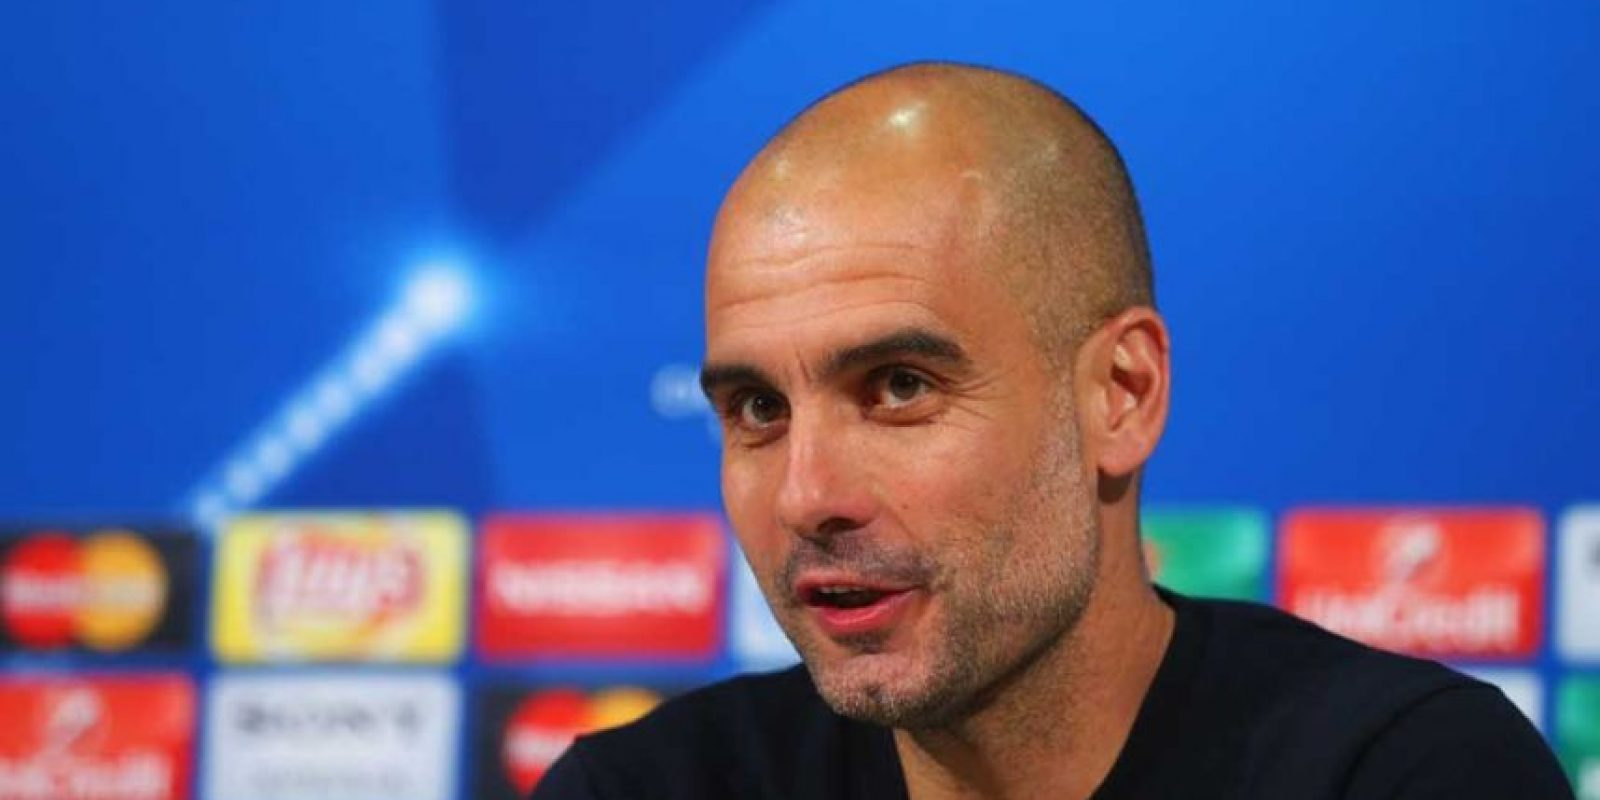 Su entrenador es Pep Guardiola. Foto: Getty Images